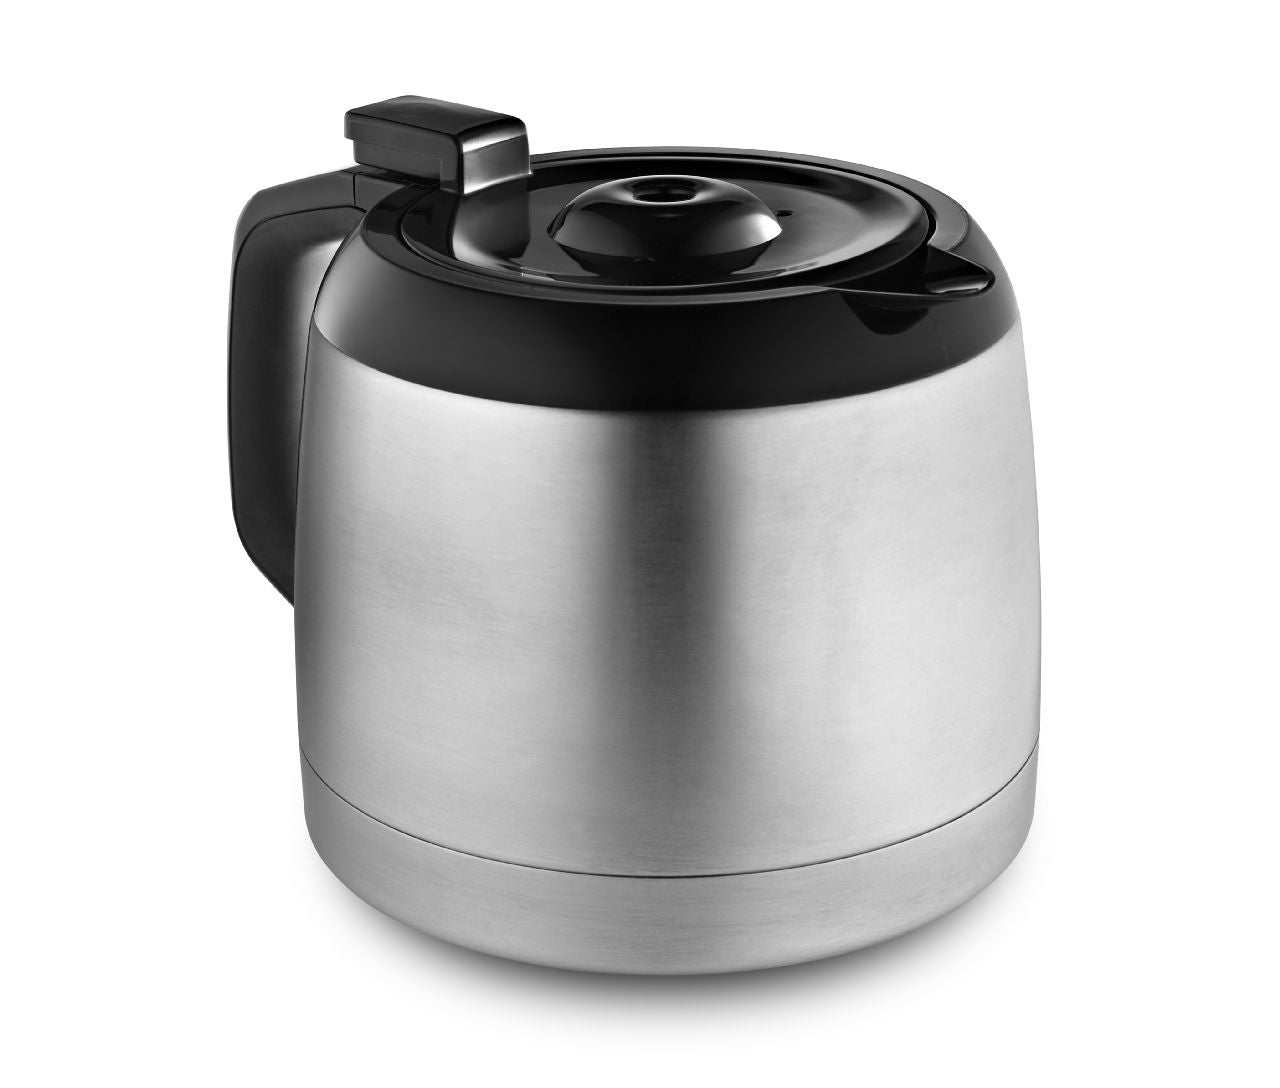 KitchenaidAid 12-Cup Thermal Carafe for KCM1203 KCM12TC